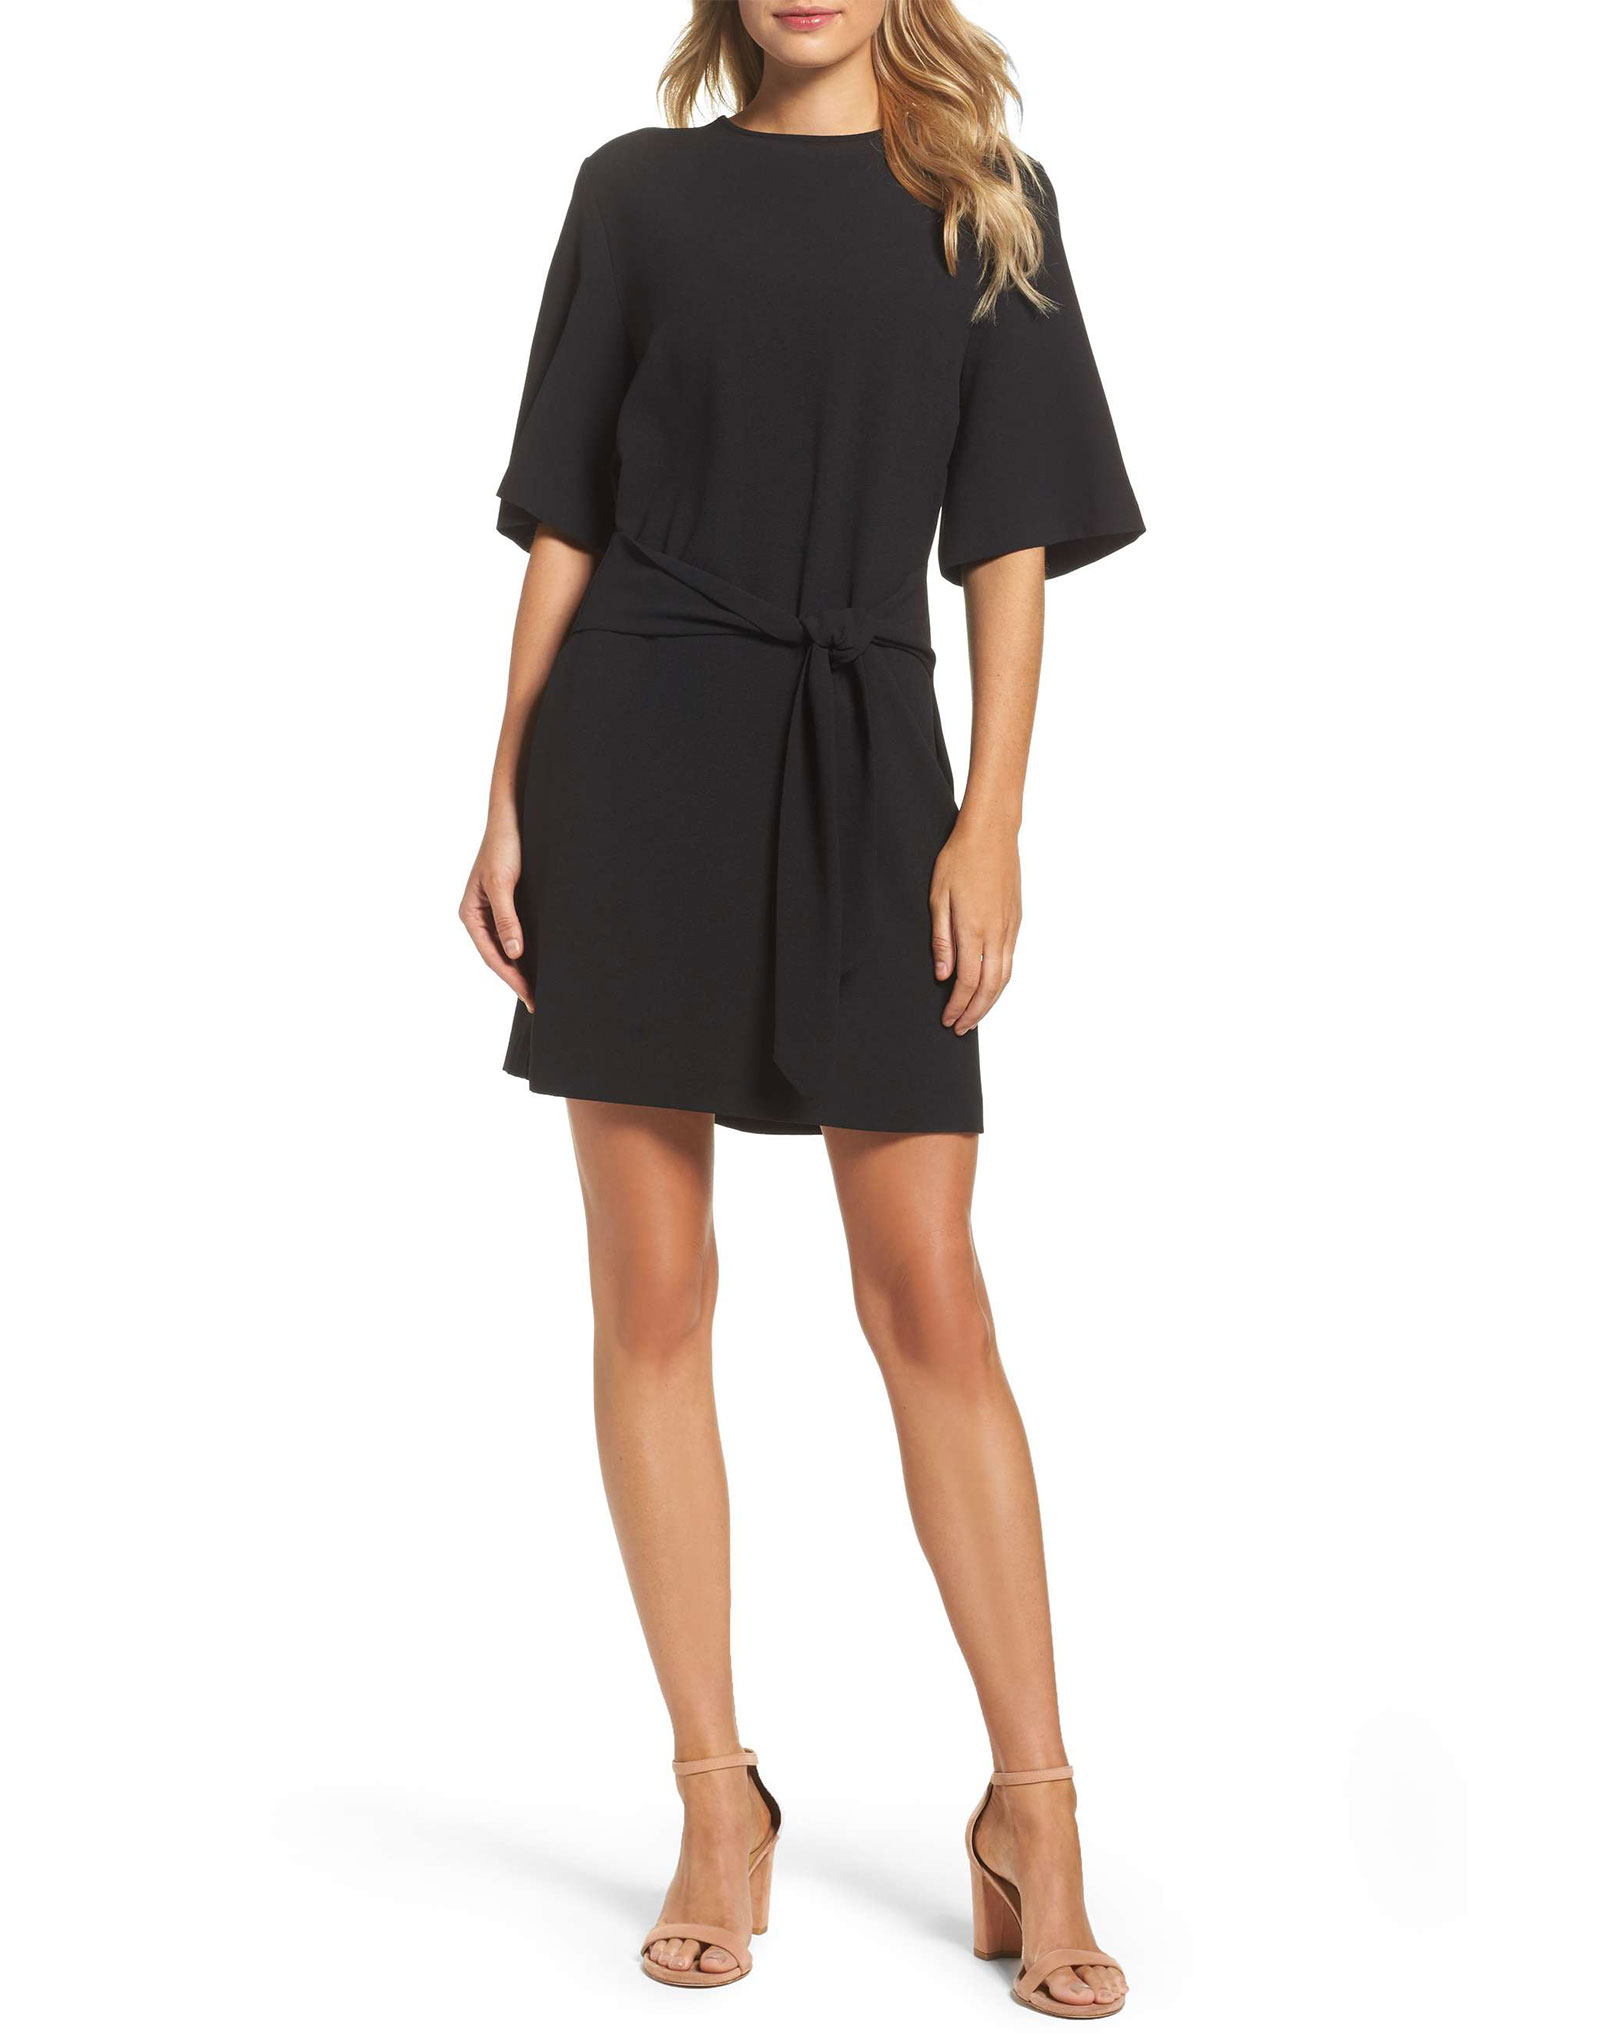 Felicity & Coco Sheath Dress at Nordstrom